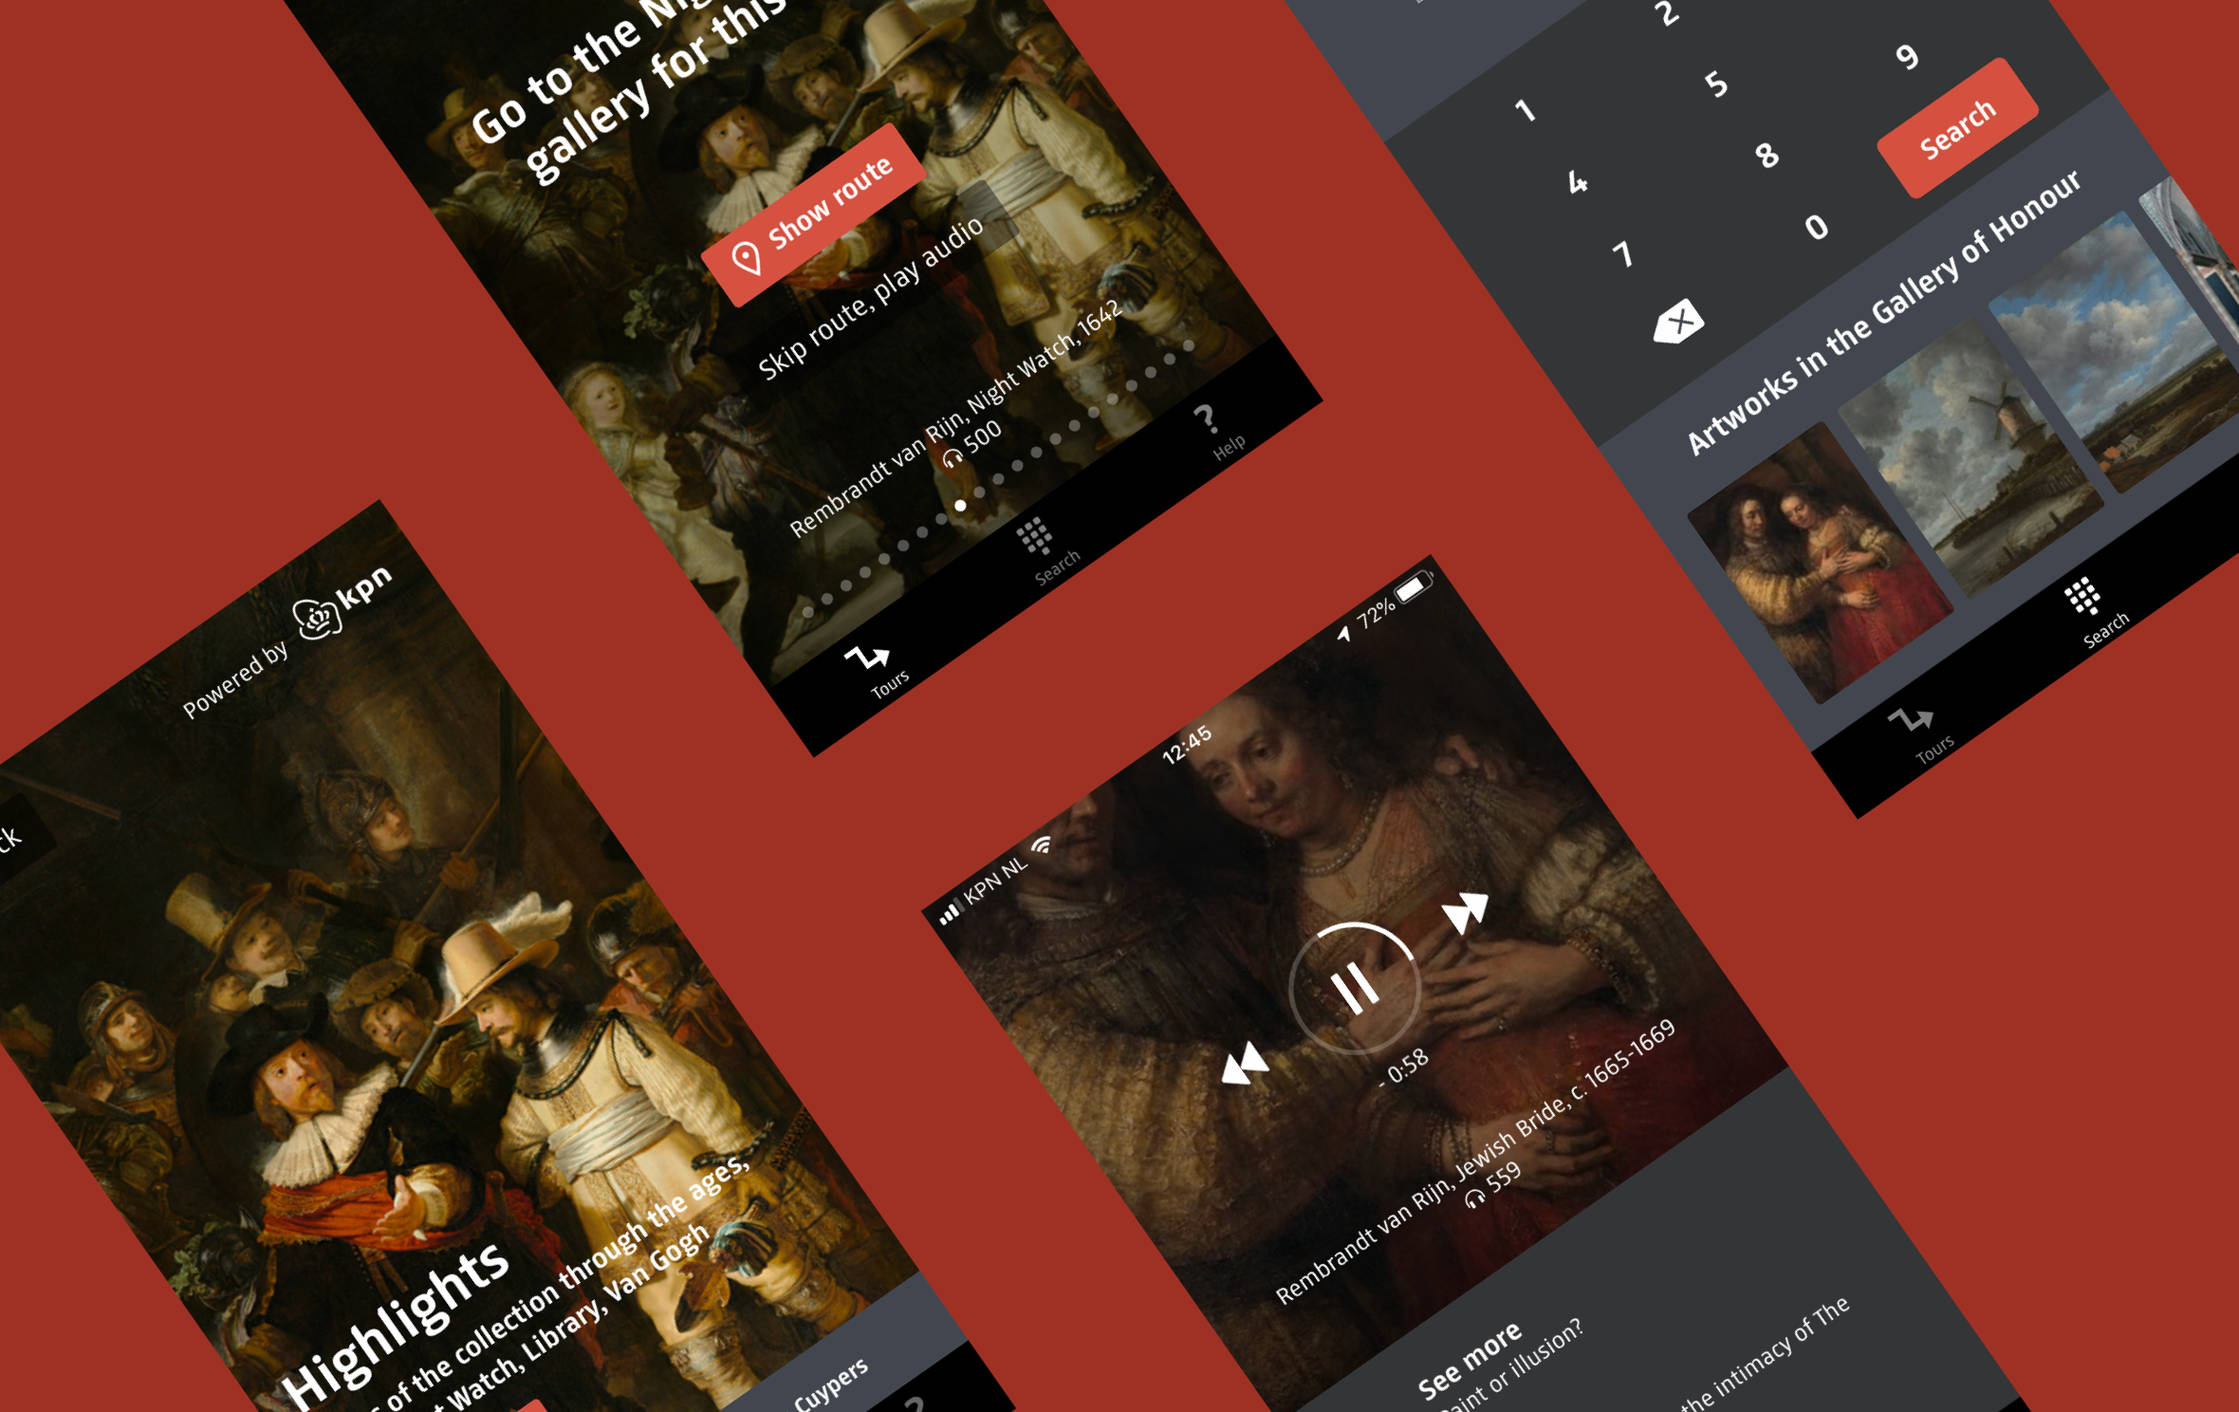 rijksmuseum app screenshots collage